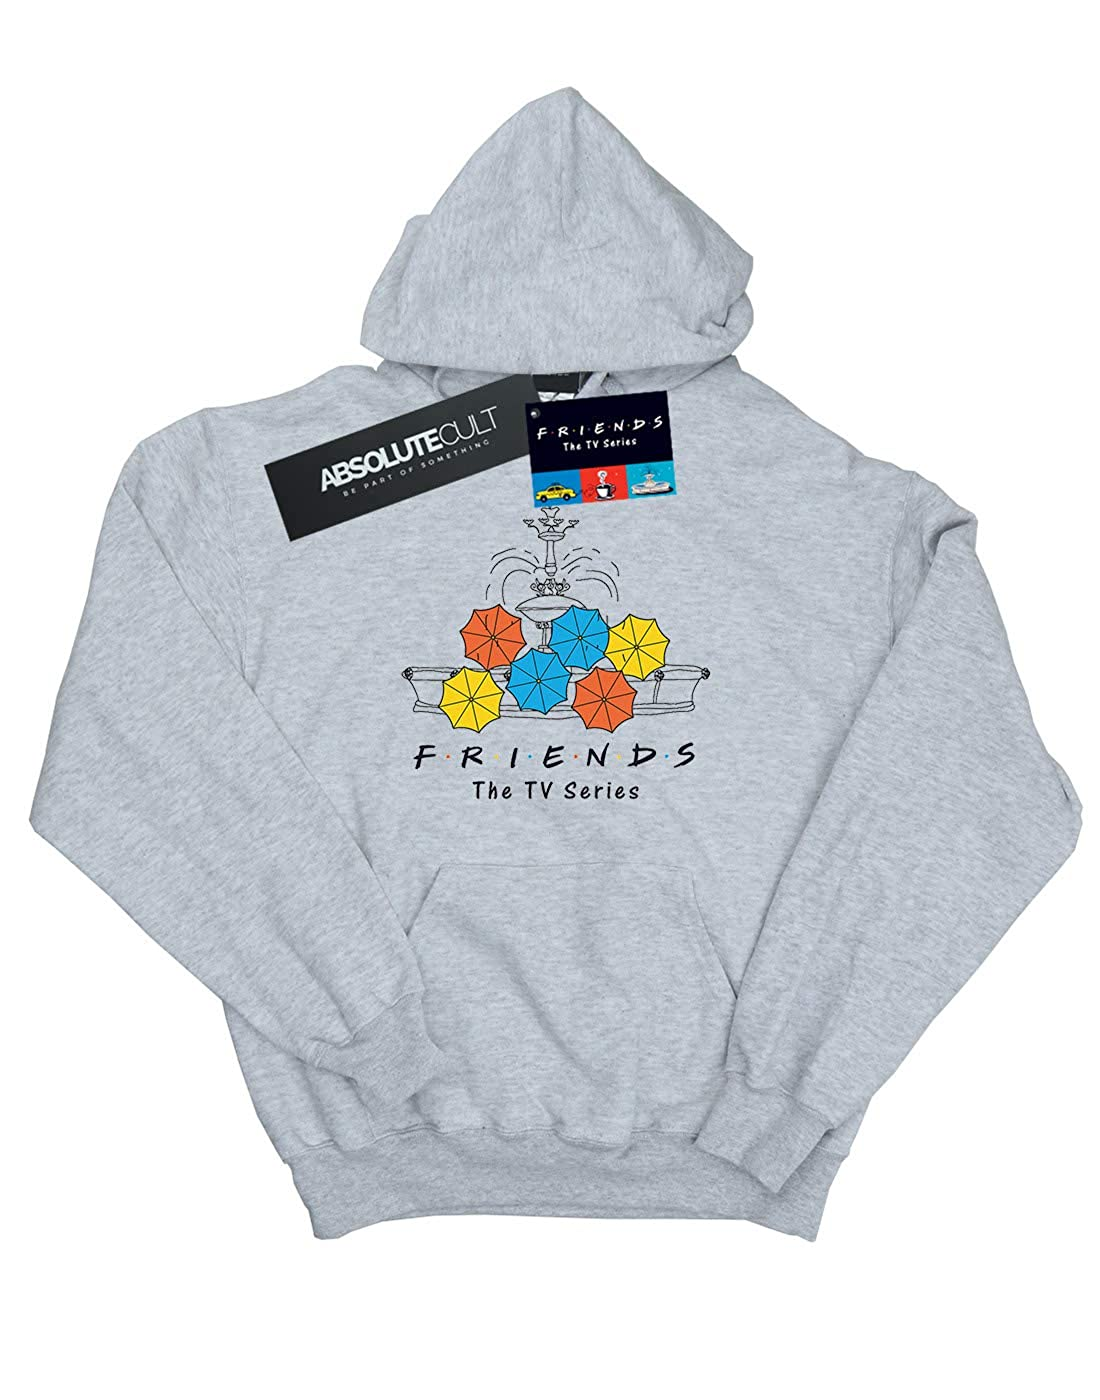 Absolute Cult Friends Girls Fountain and Umbrellas Hoodie